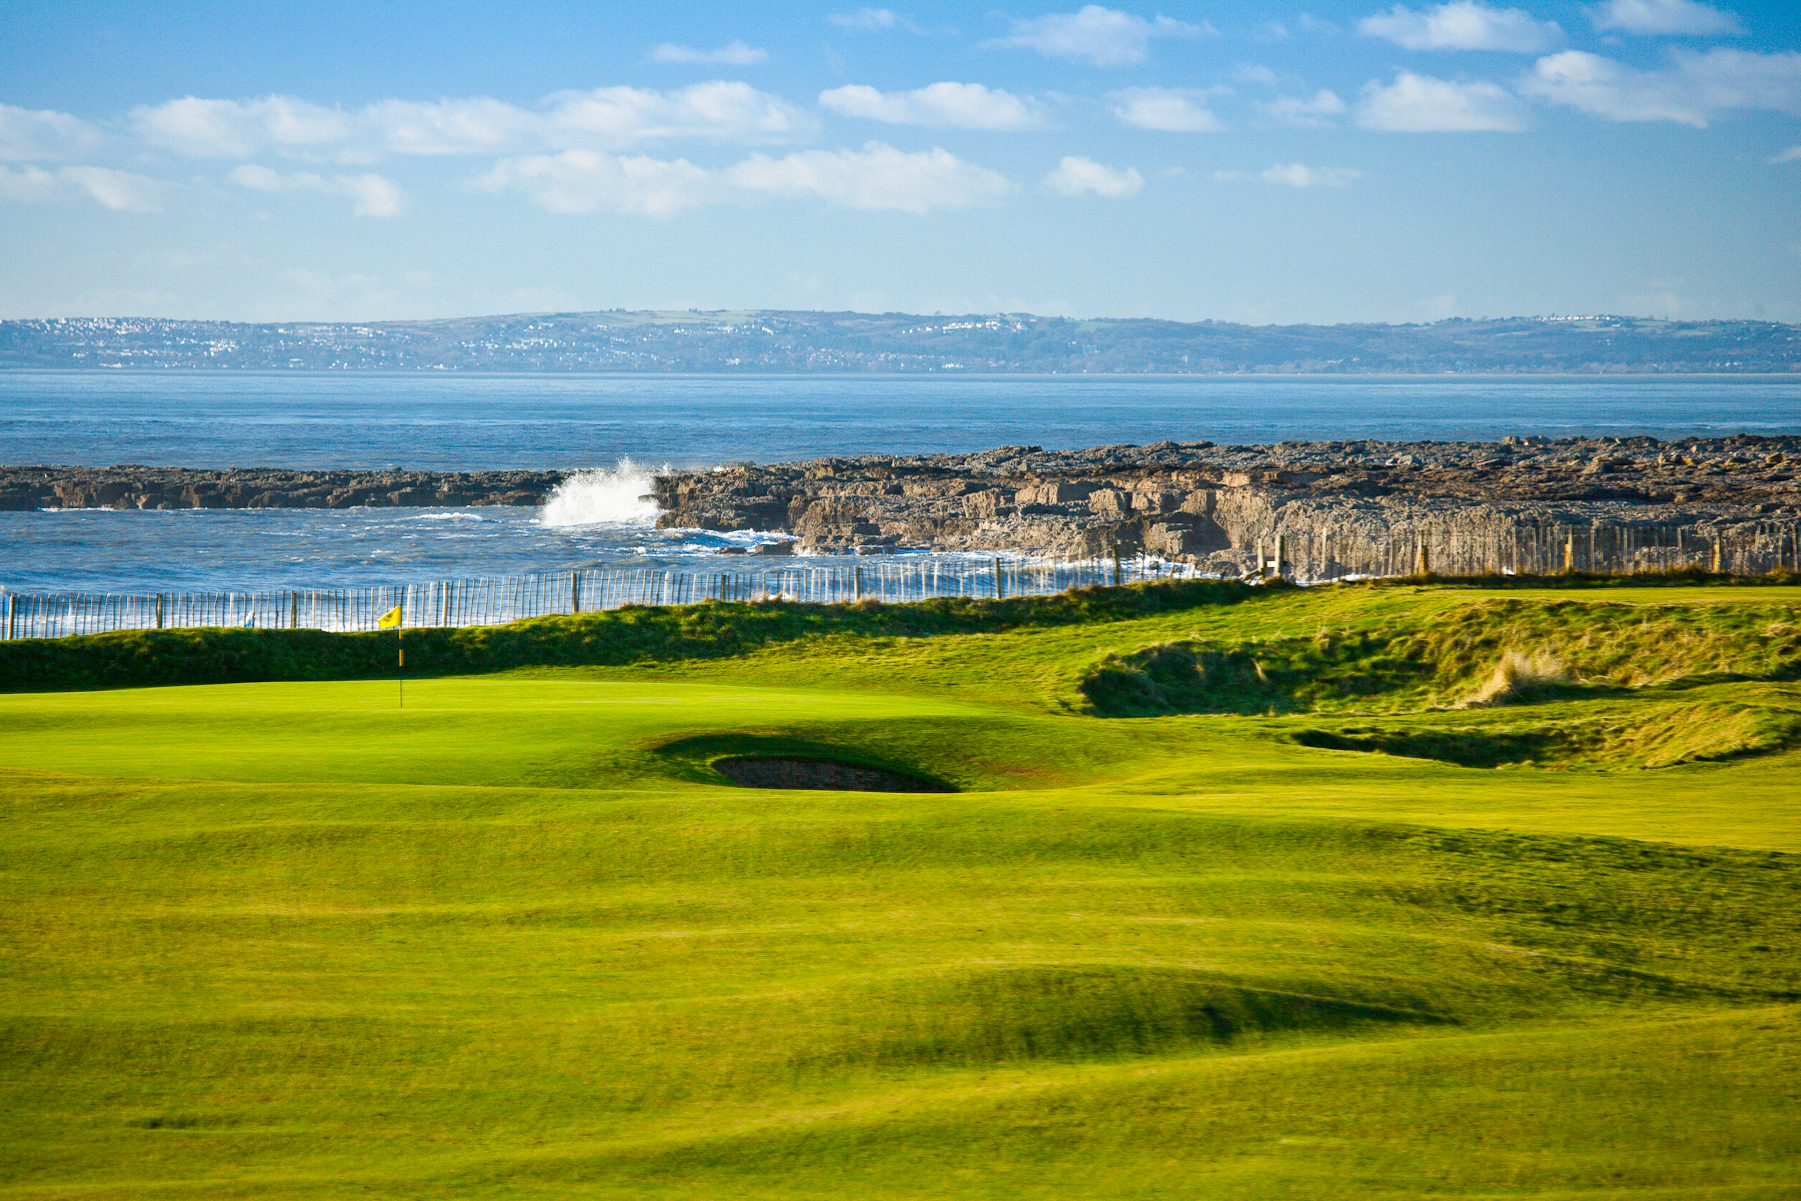 Overview of golf course named Royal Porthcawl Golf Club